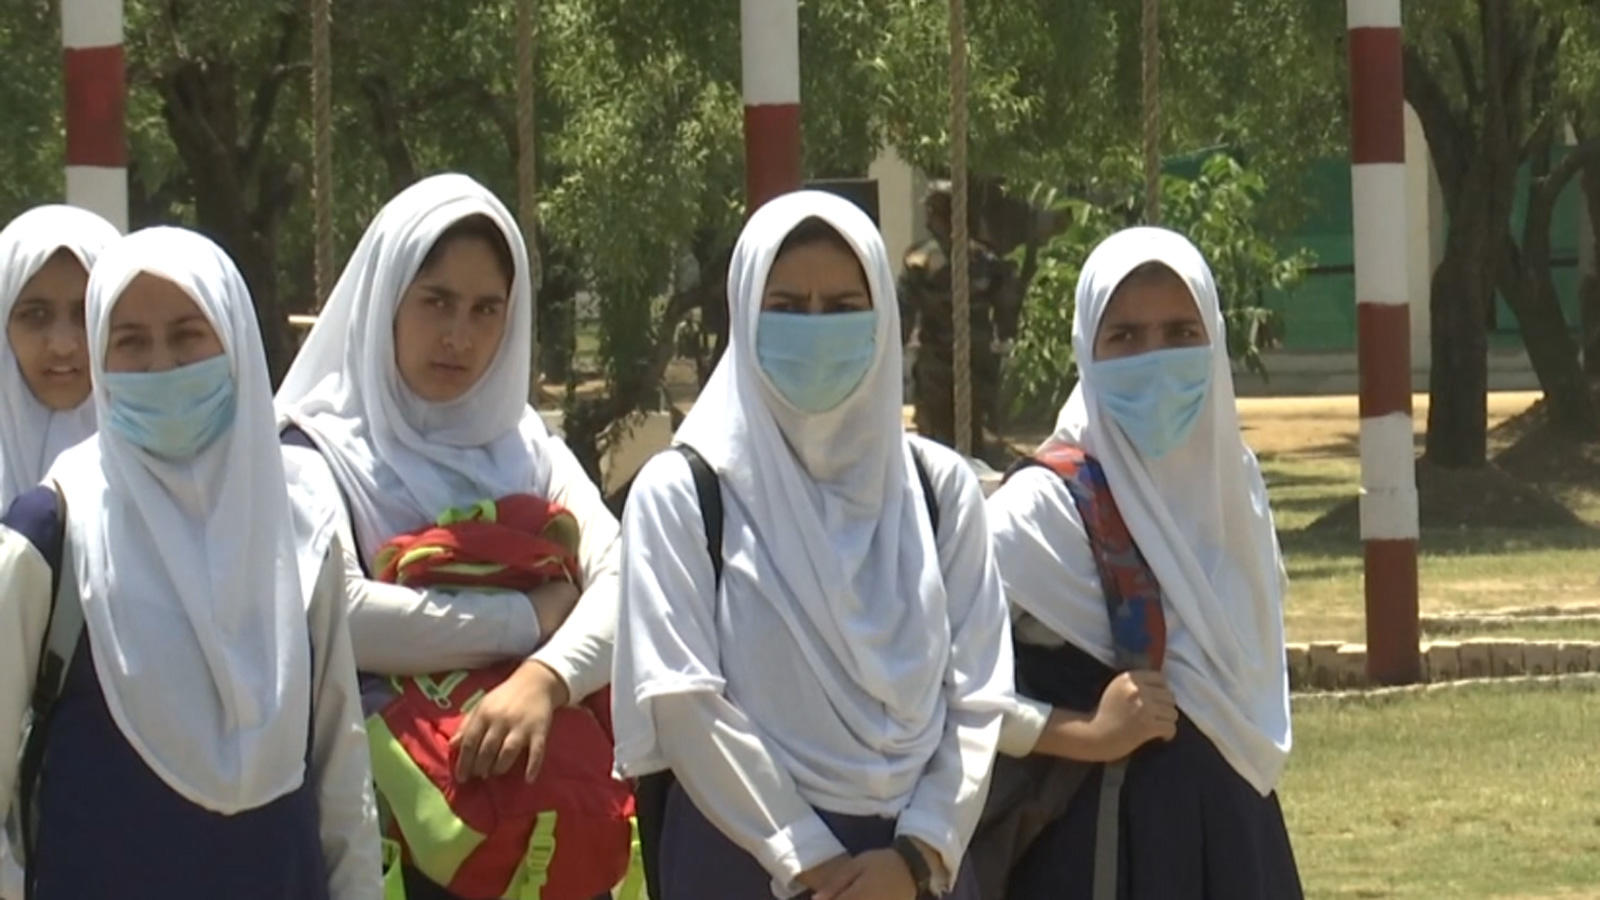 jk-know-your-army-tour-lifts-up-spirit-of-school-students-in-srinagar-amid-covid-19